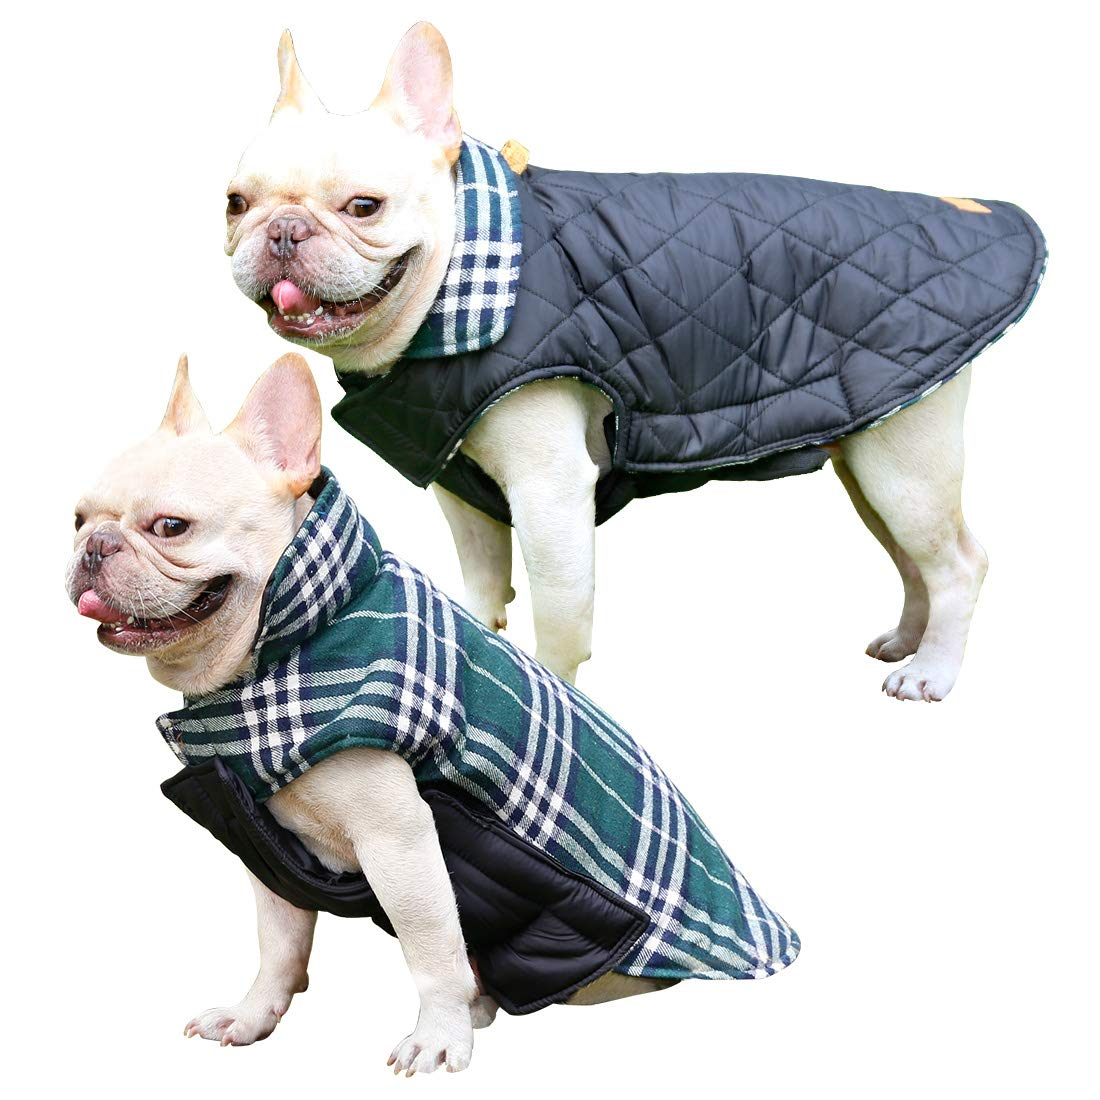 Green XL(Neck 18.5\ Green XL(Neck 18.5\ Dog Jacket Pets Apparel Winter Vest Dog Waterproof Climate Changer Weather Pet Products Available in S, M, L, XL,XXL Sizes (XL Green)